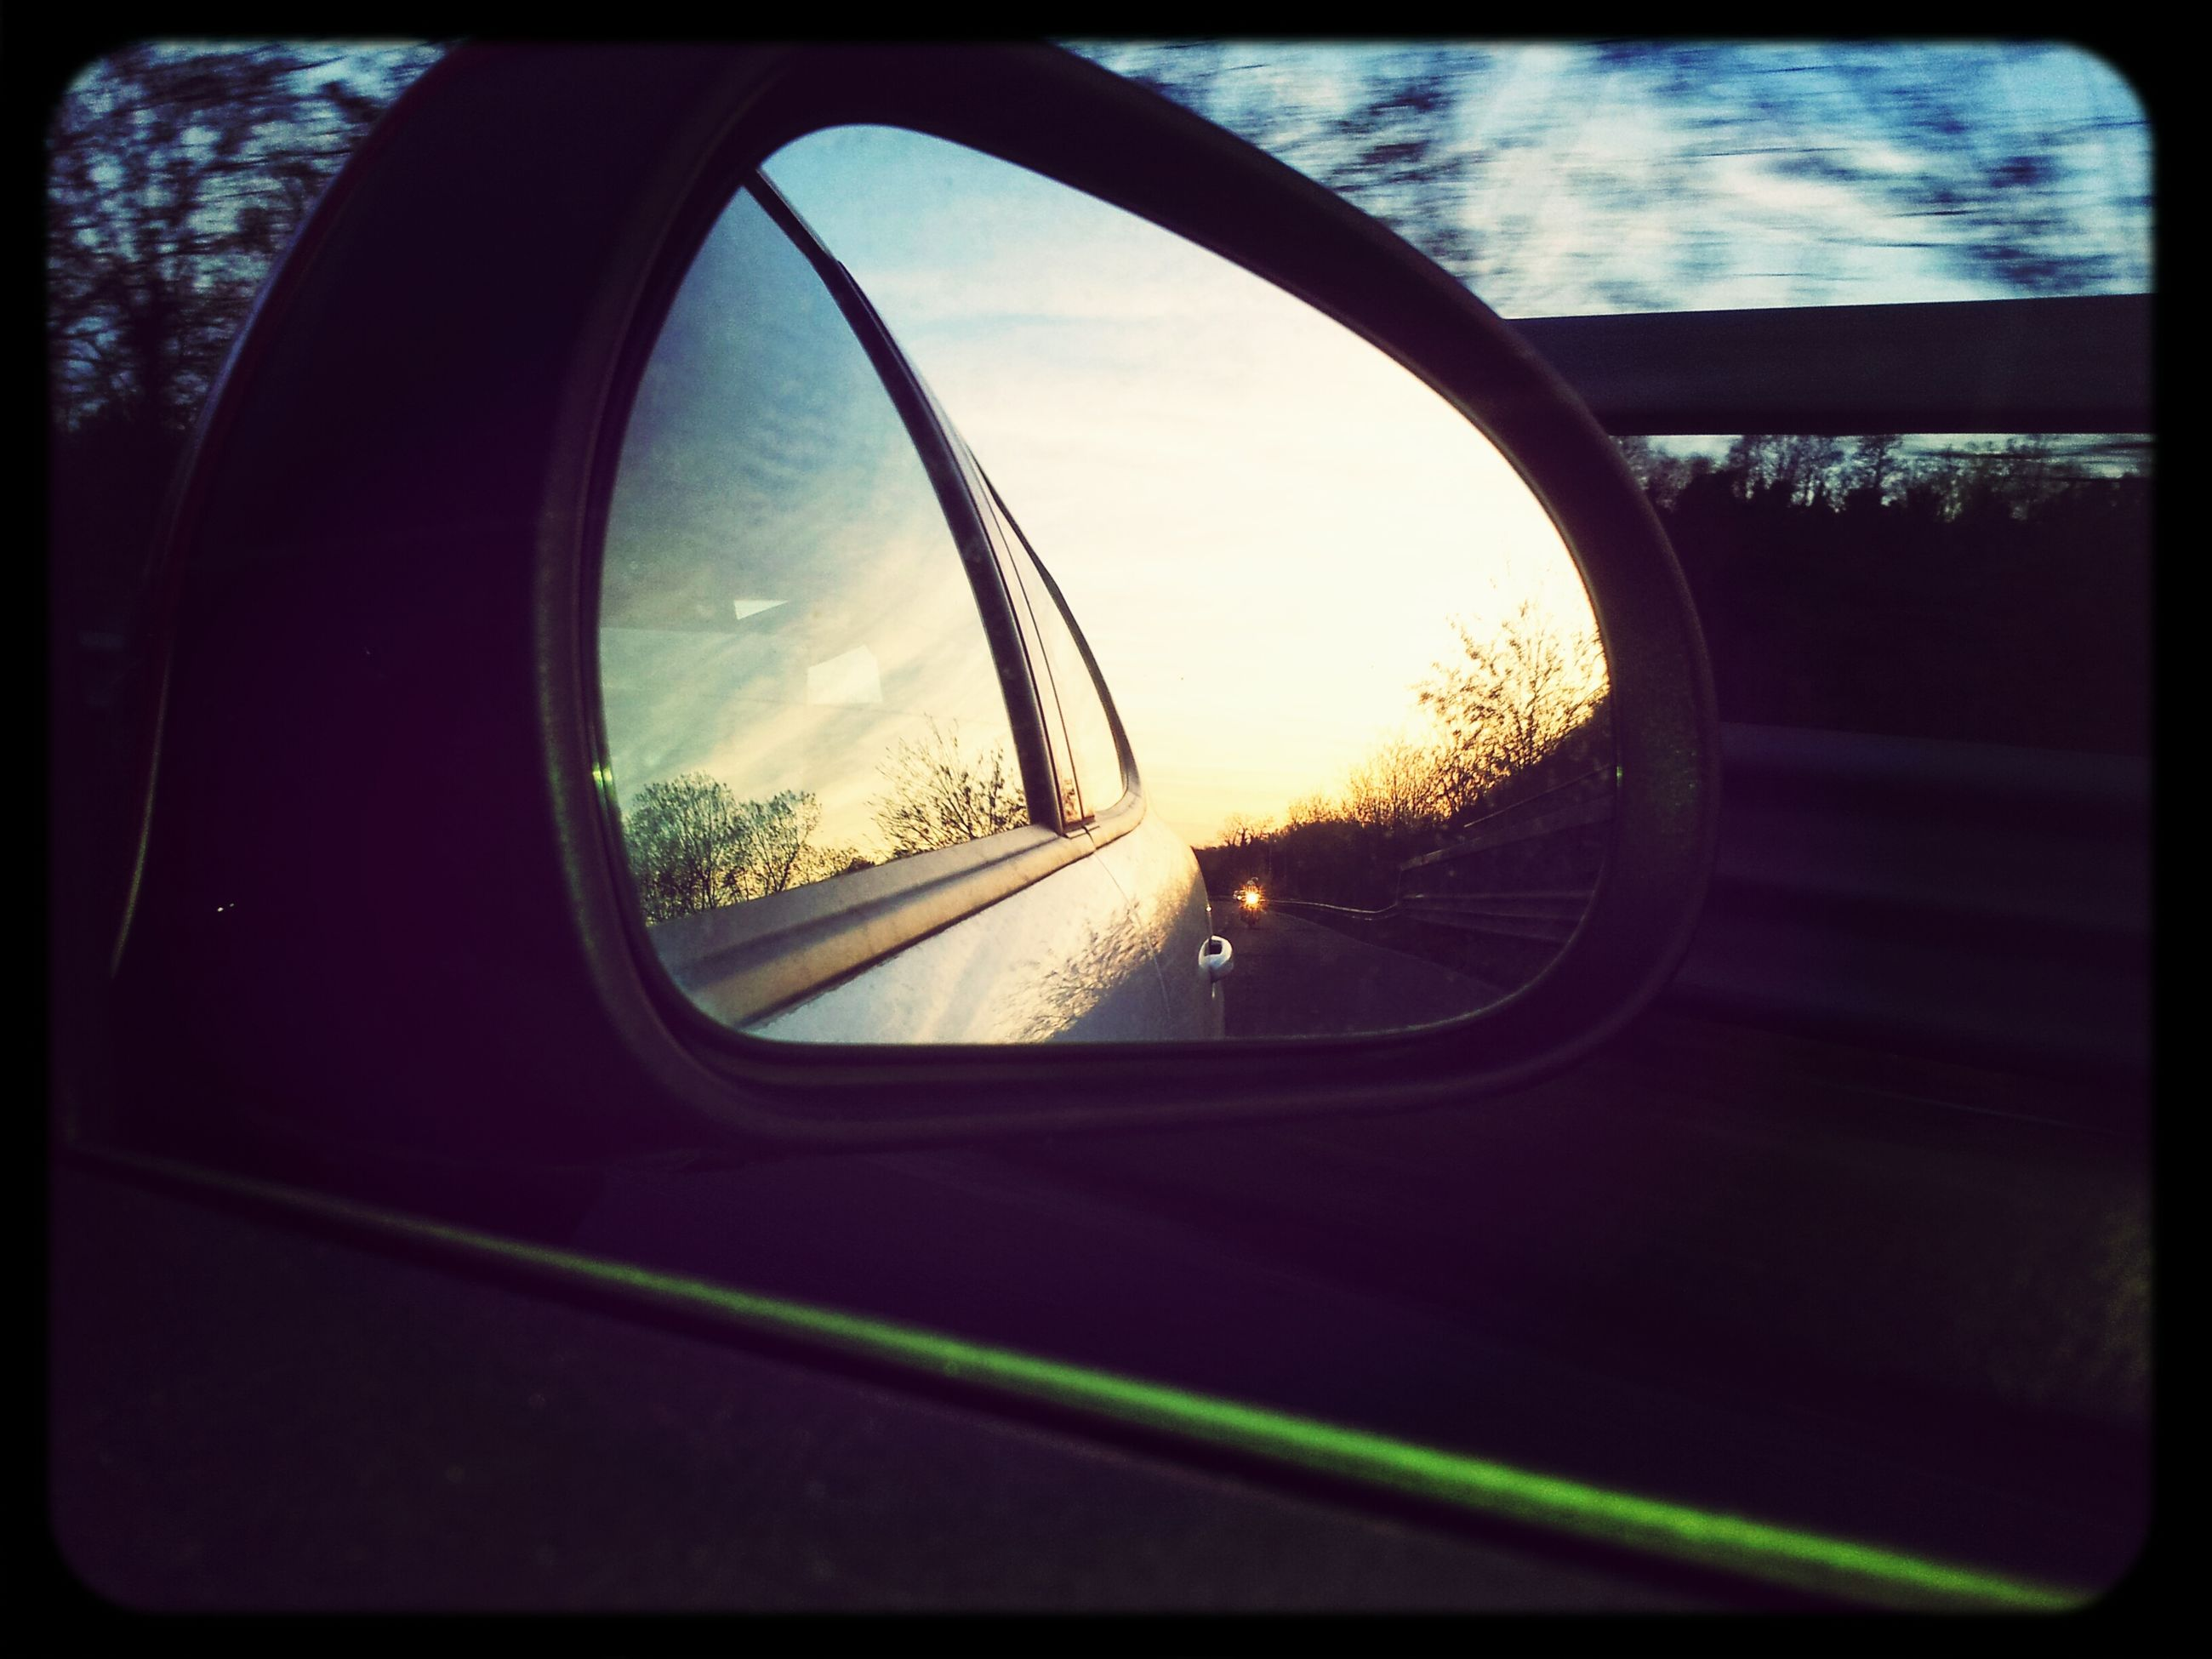 transportation, land vehicle, car, side-view mirror, mode of transport, sky, reflection, glass - material, transparent, road, sunset, window, transfer print, sun, car interior, street, vehicle interior, cloud - sky, close-up, sunlight